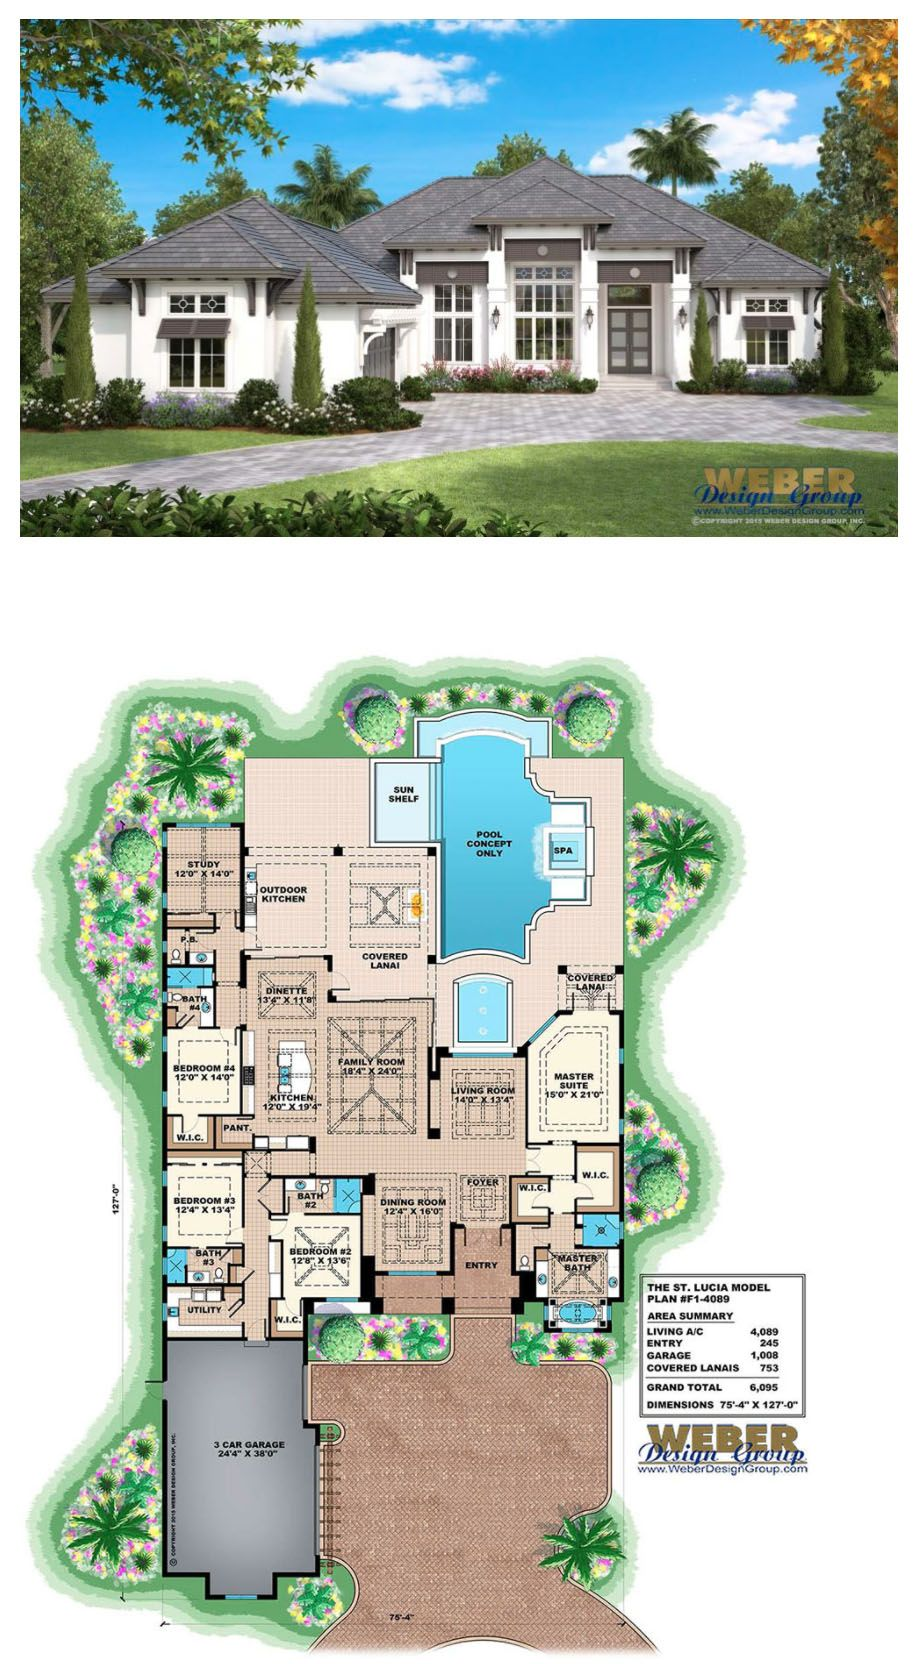 Beach House Plan: Coastal West Ins Style Home Floor Plan ... on floor plans with elevators, floor plans for shower houses, floor plans for living rooms, floor plans for townhomes, floor plans for hotels, floor plans dual master bedroom, floor plans for rugs, floor plans for restaurants, floor plans for villas, floor plans for homes, floor plans for apartments, floor plans for cottages, floor plans for schools, floor plans for studios, floor plans for tree houses, floor plans for motels, floor plans for town houses, floor plans for guest houses, floor plans for green houses, floor plans for bedrooms,